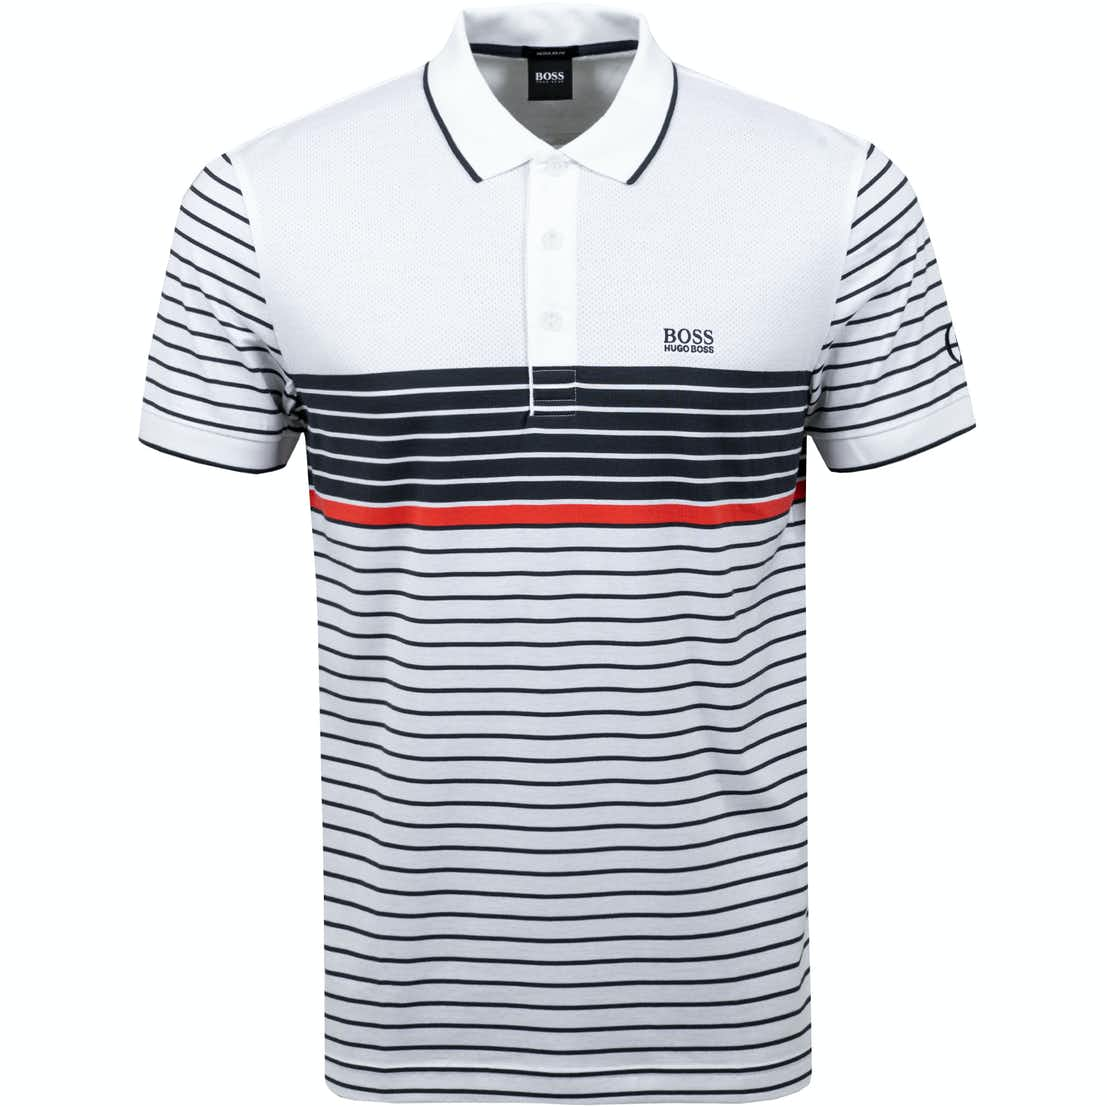 The Open BOSS Striped Polo Shirt - White and Blue